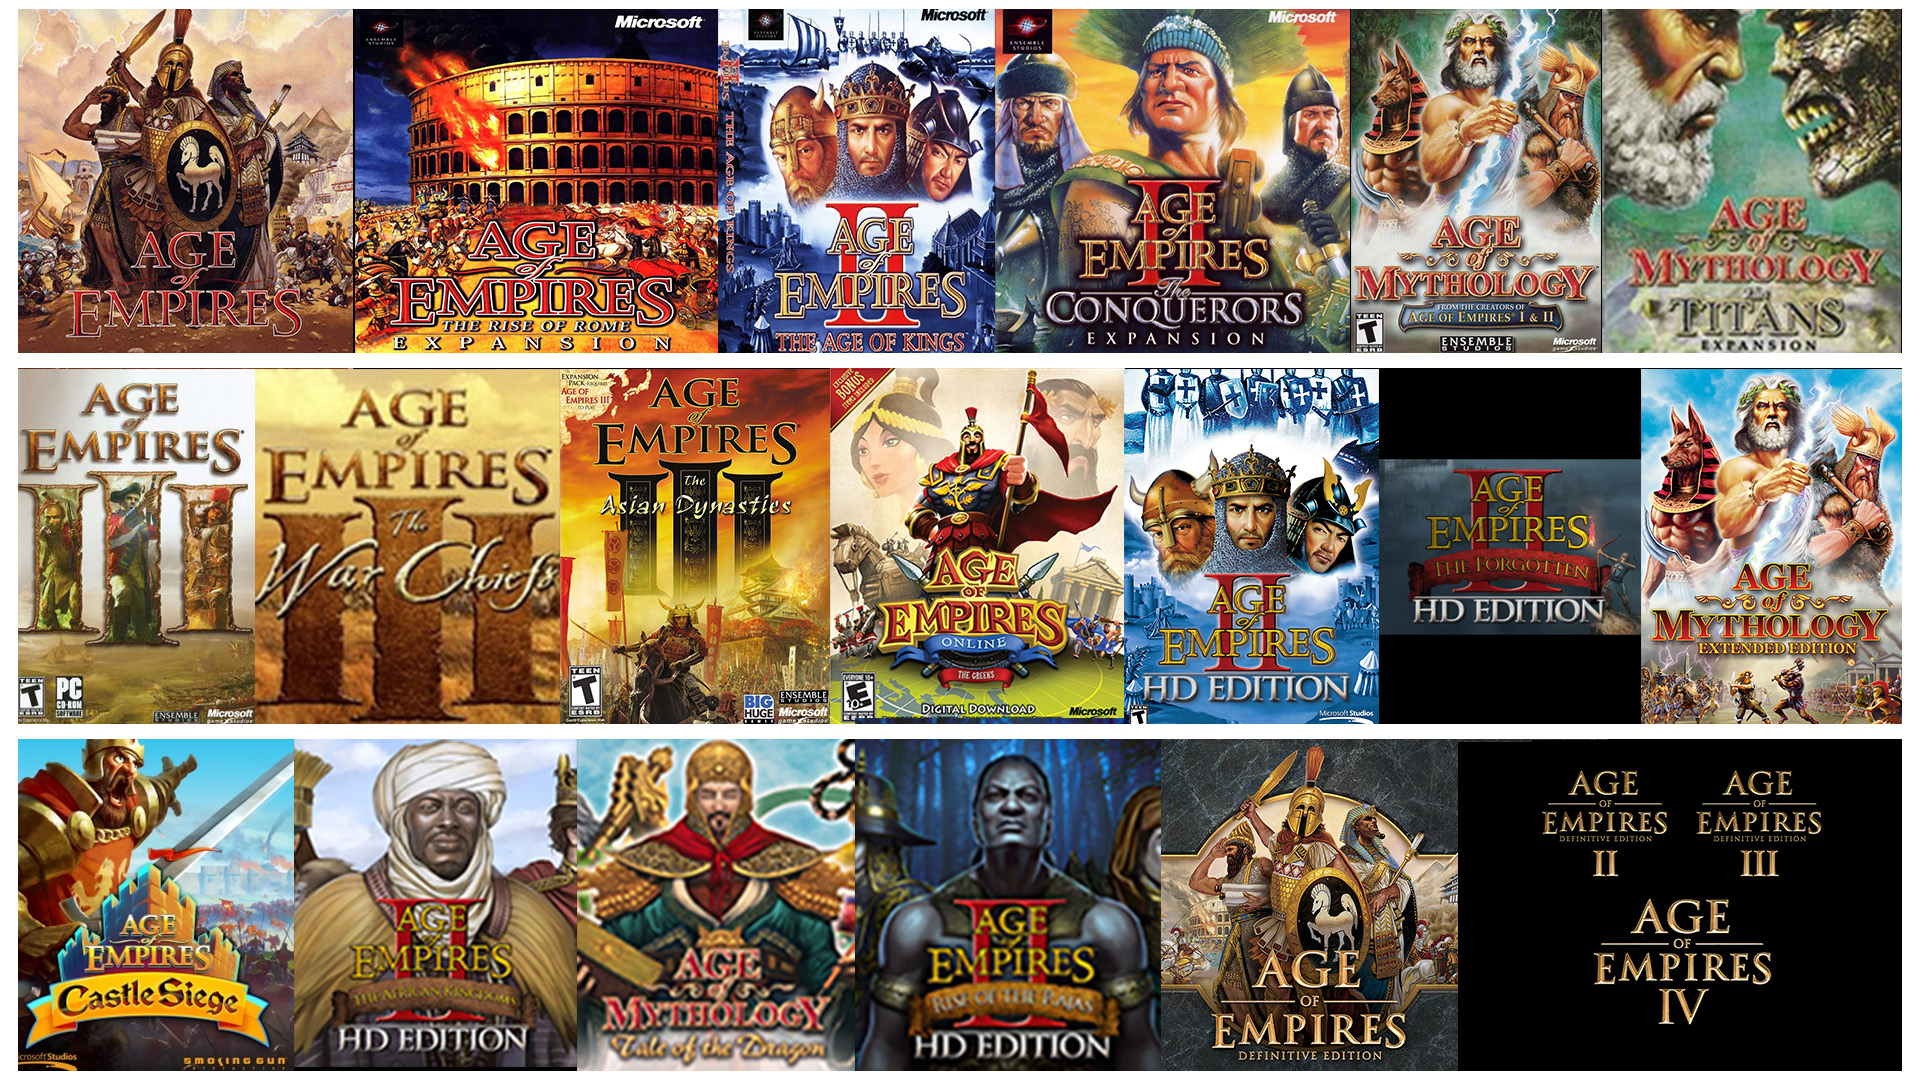 Today marks 20 years since October 15th 1997, the day that Age of Empires  was first released. It's been a long, crazy, amazing journey since then.